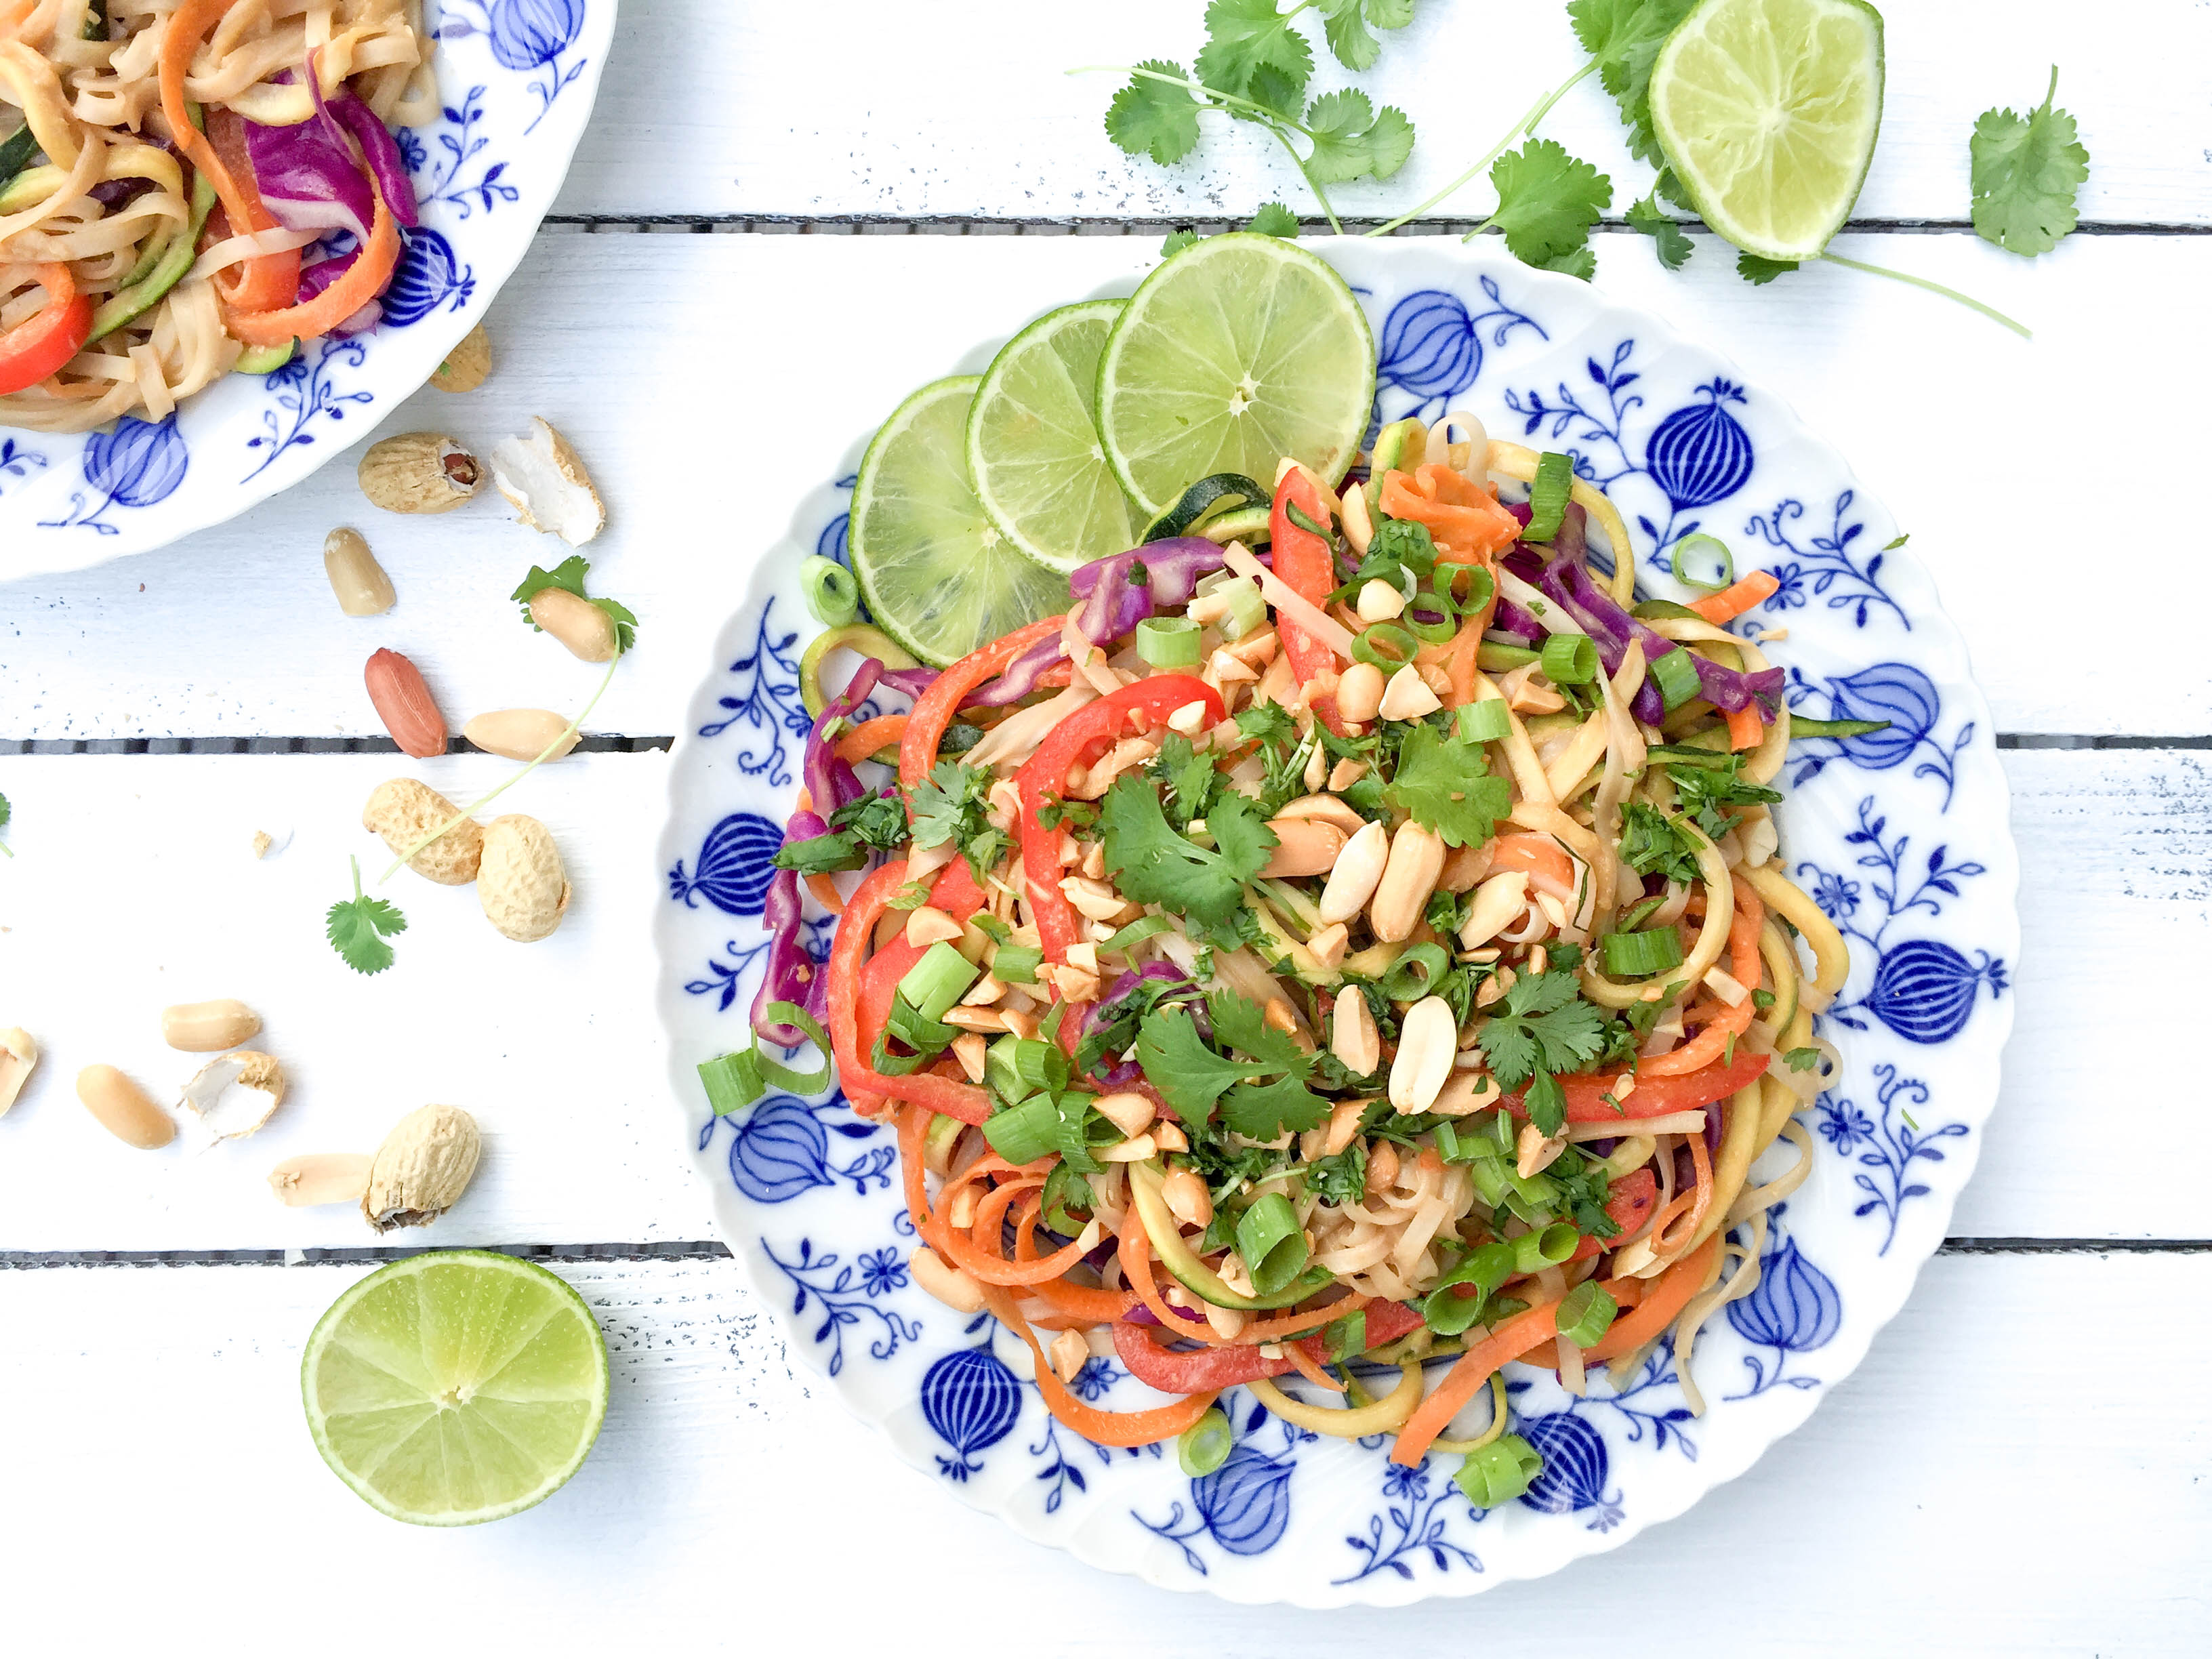 Video: Healthy Pad Thai with Peanut Sauce and Coriander